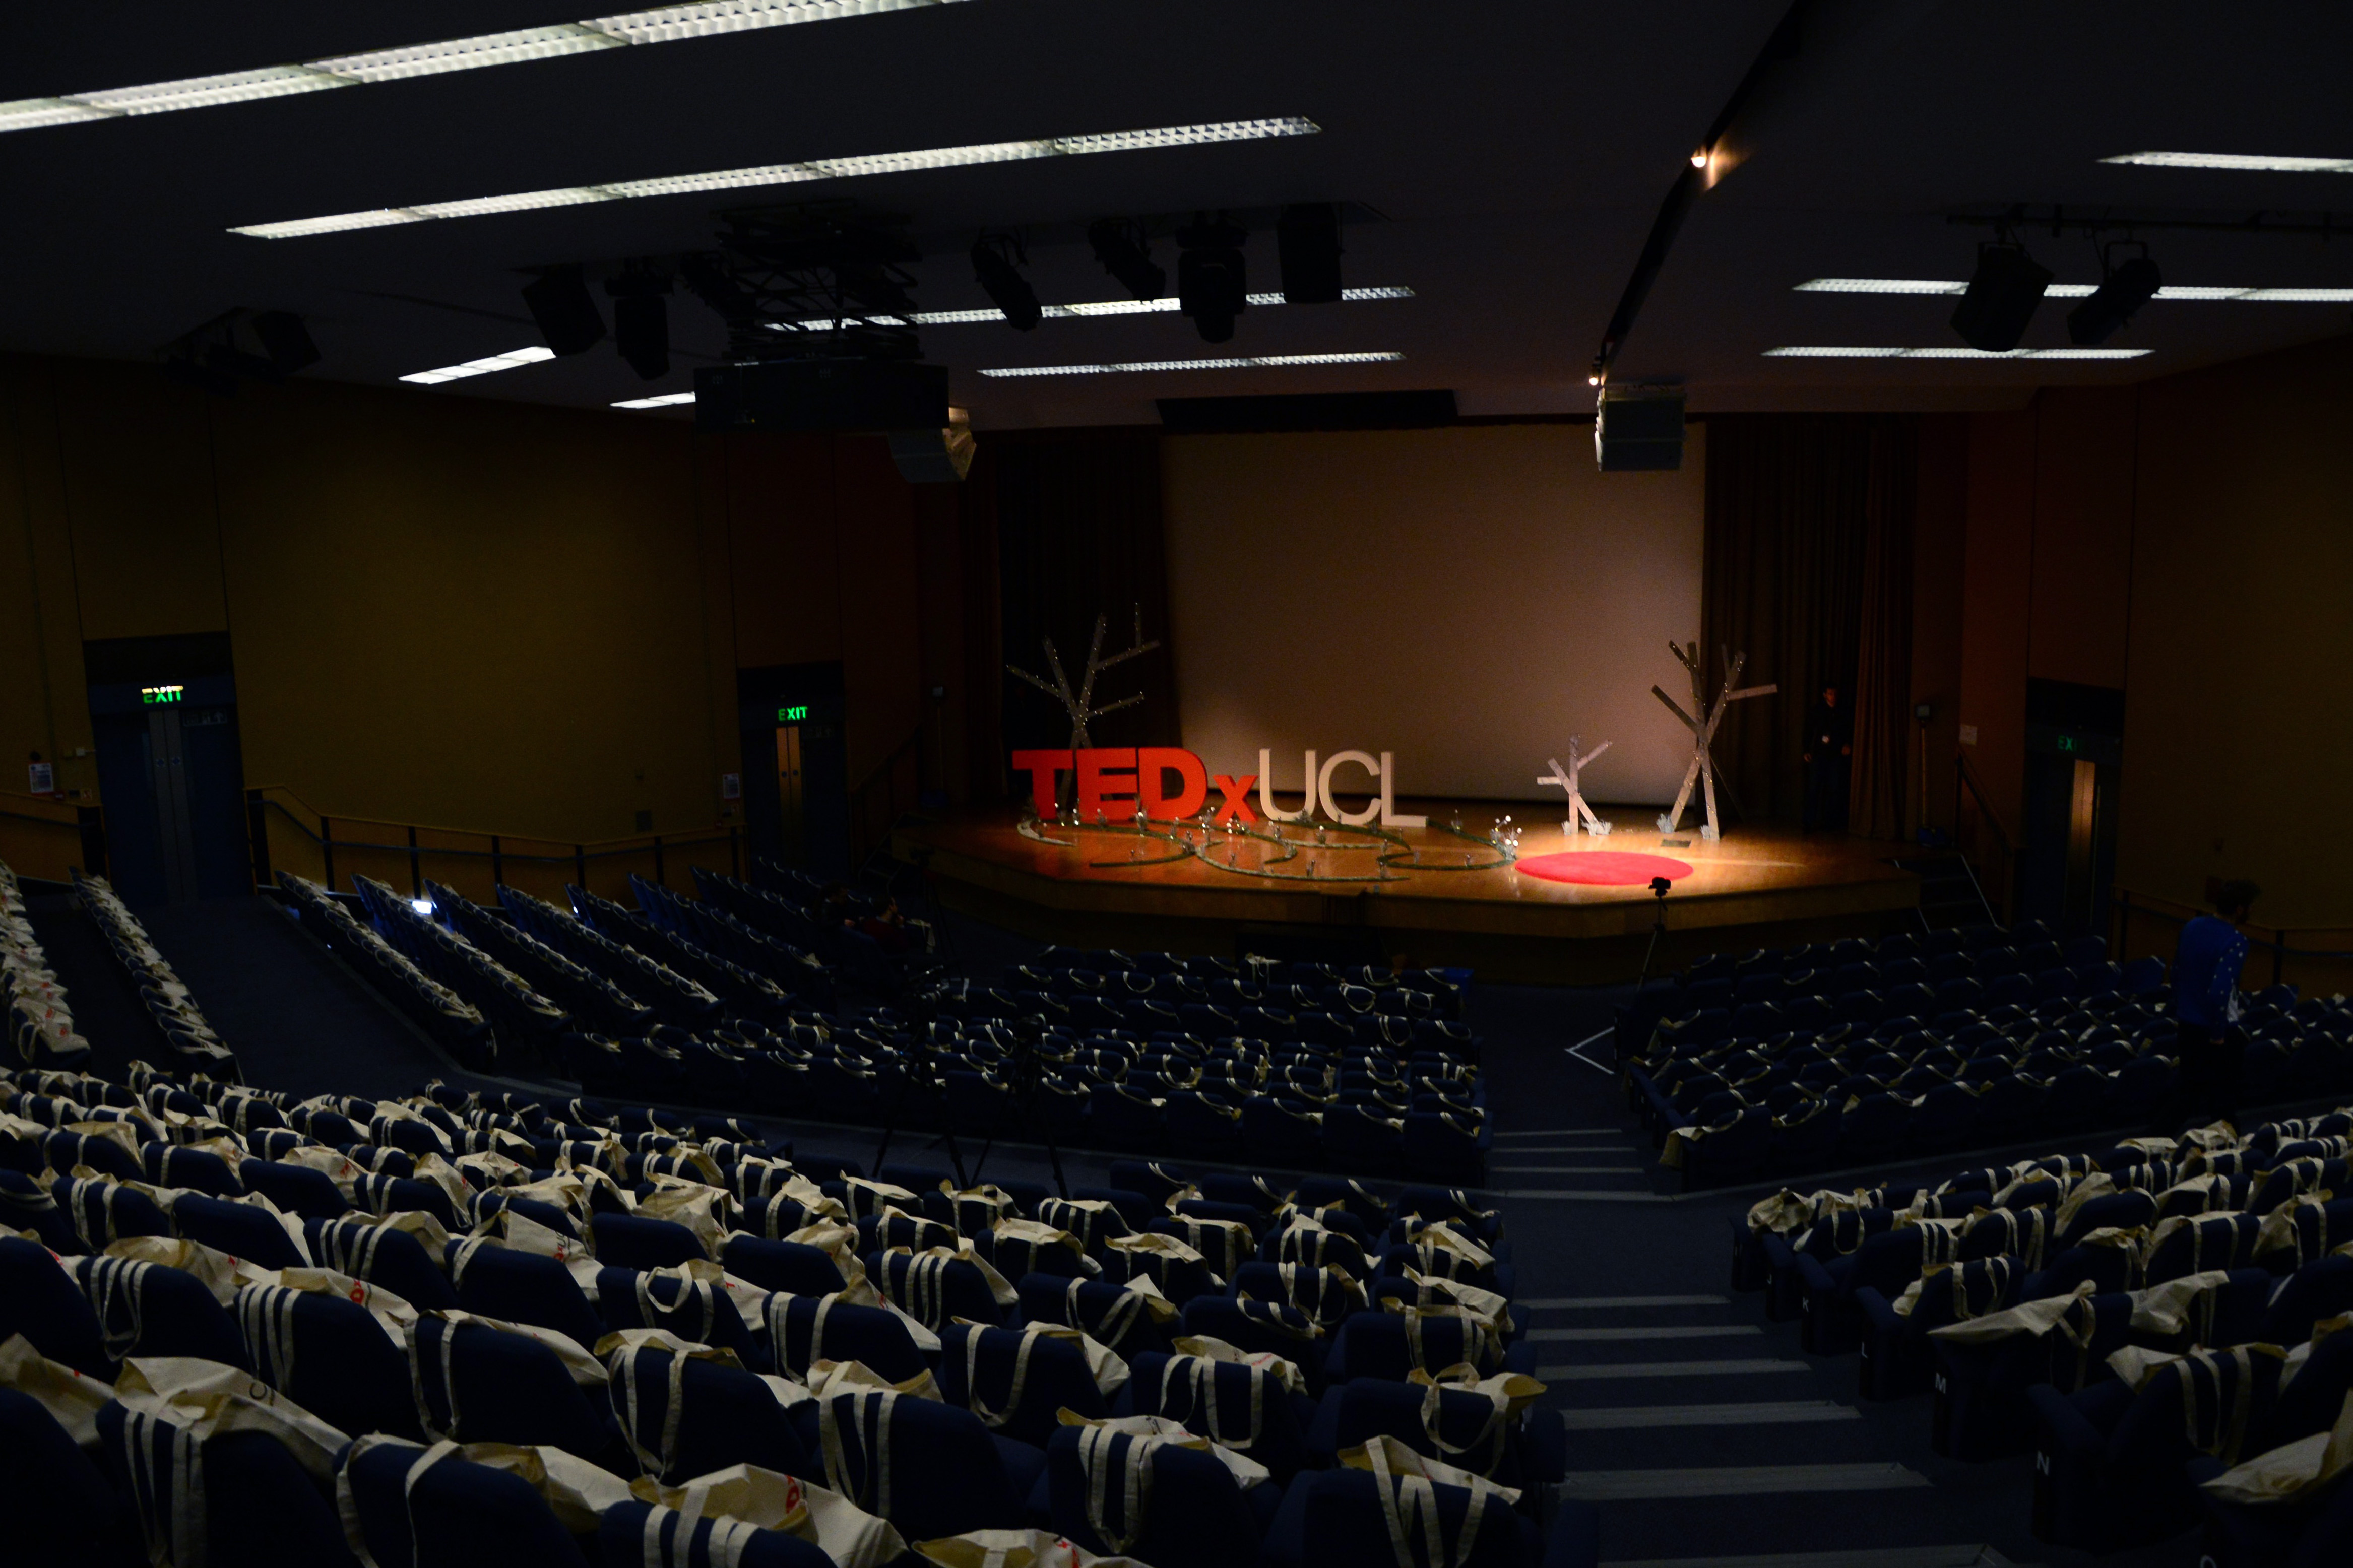 tedx ucl 2015 event